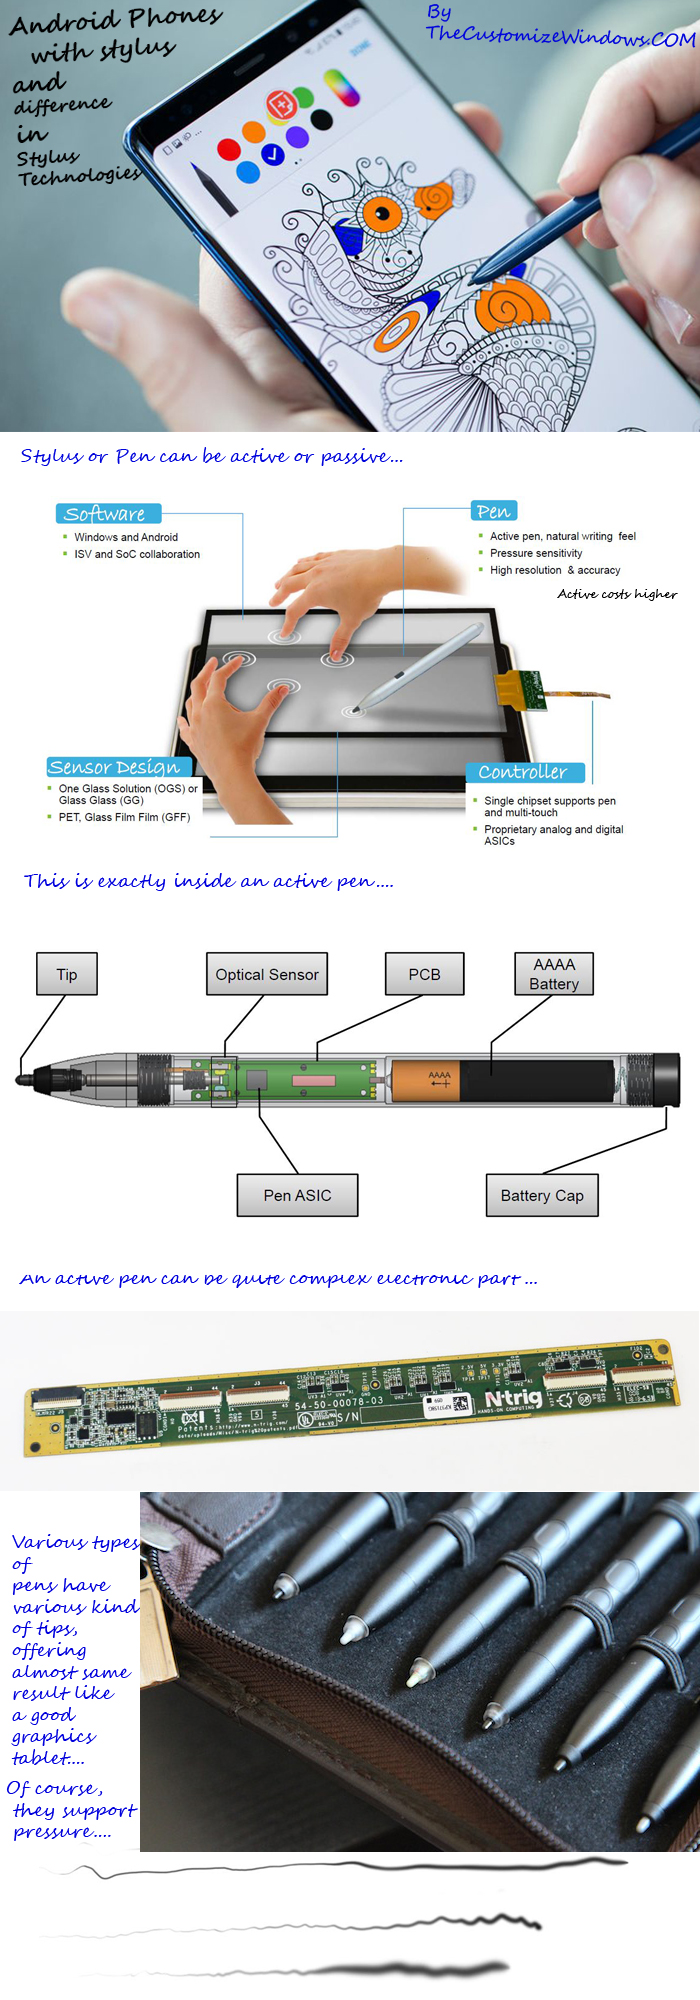 Android-Phones-With-Stylus-and-Difference-in-Stylus-Technologies